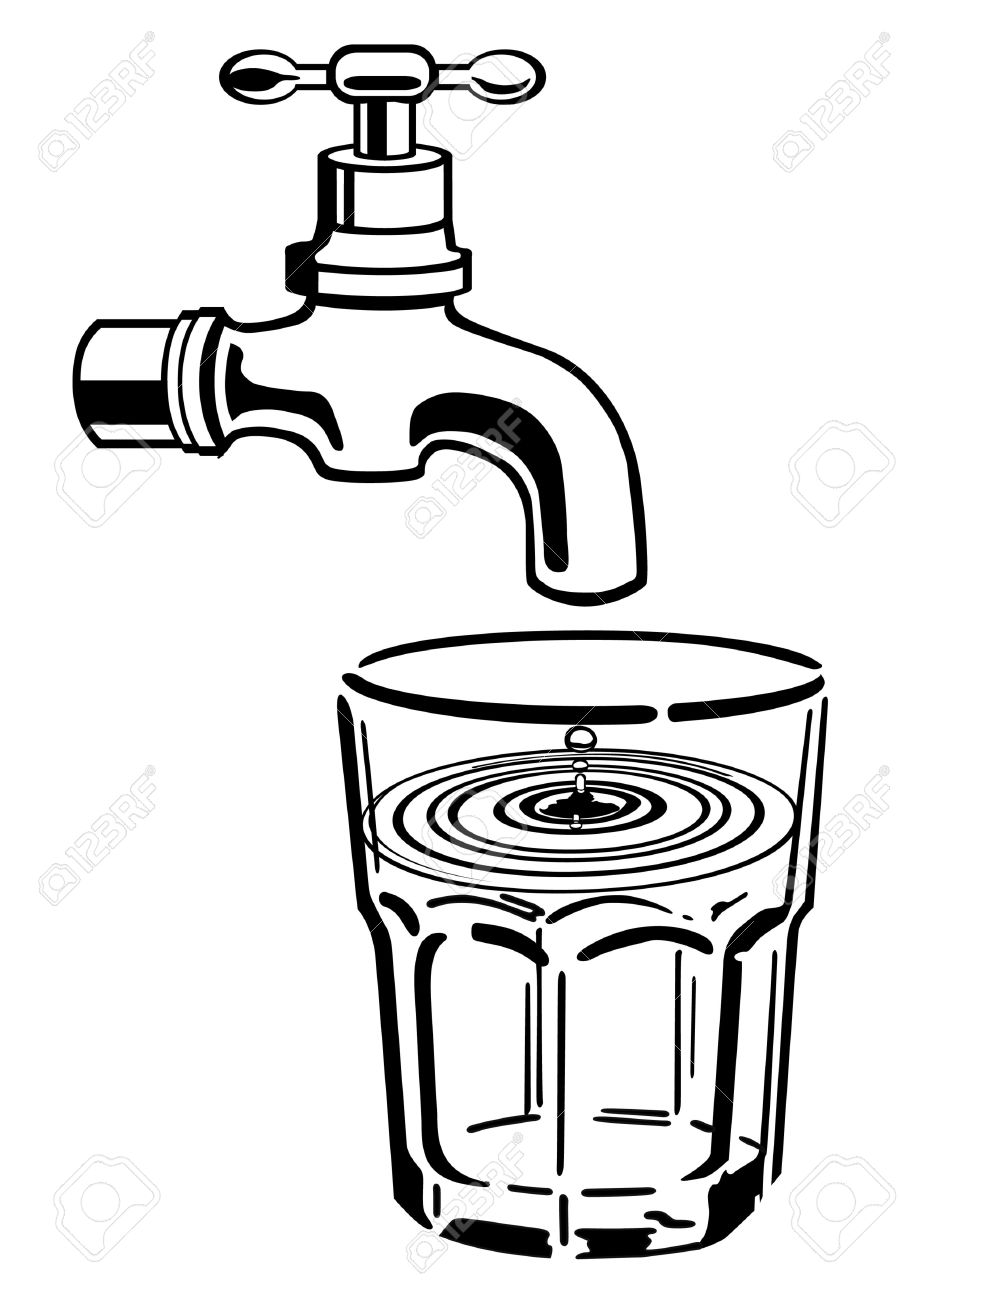 987x1300 Drinking Water Clipart Black And White